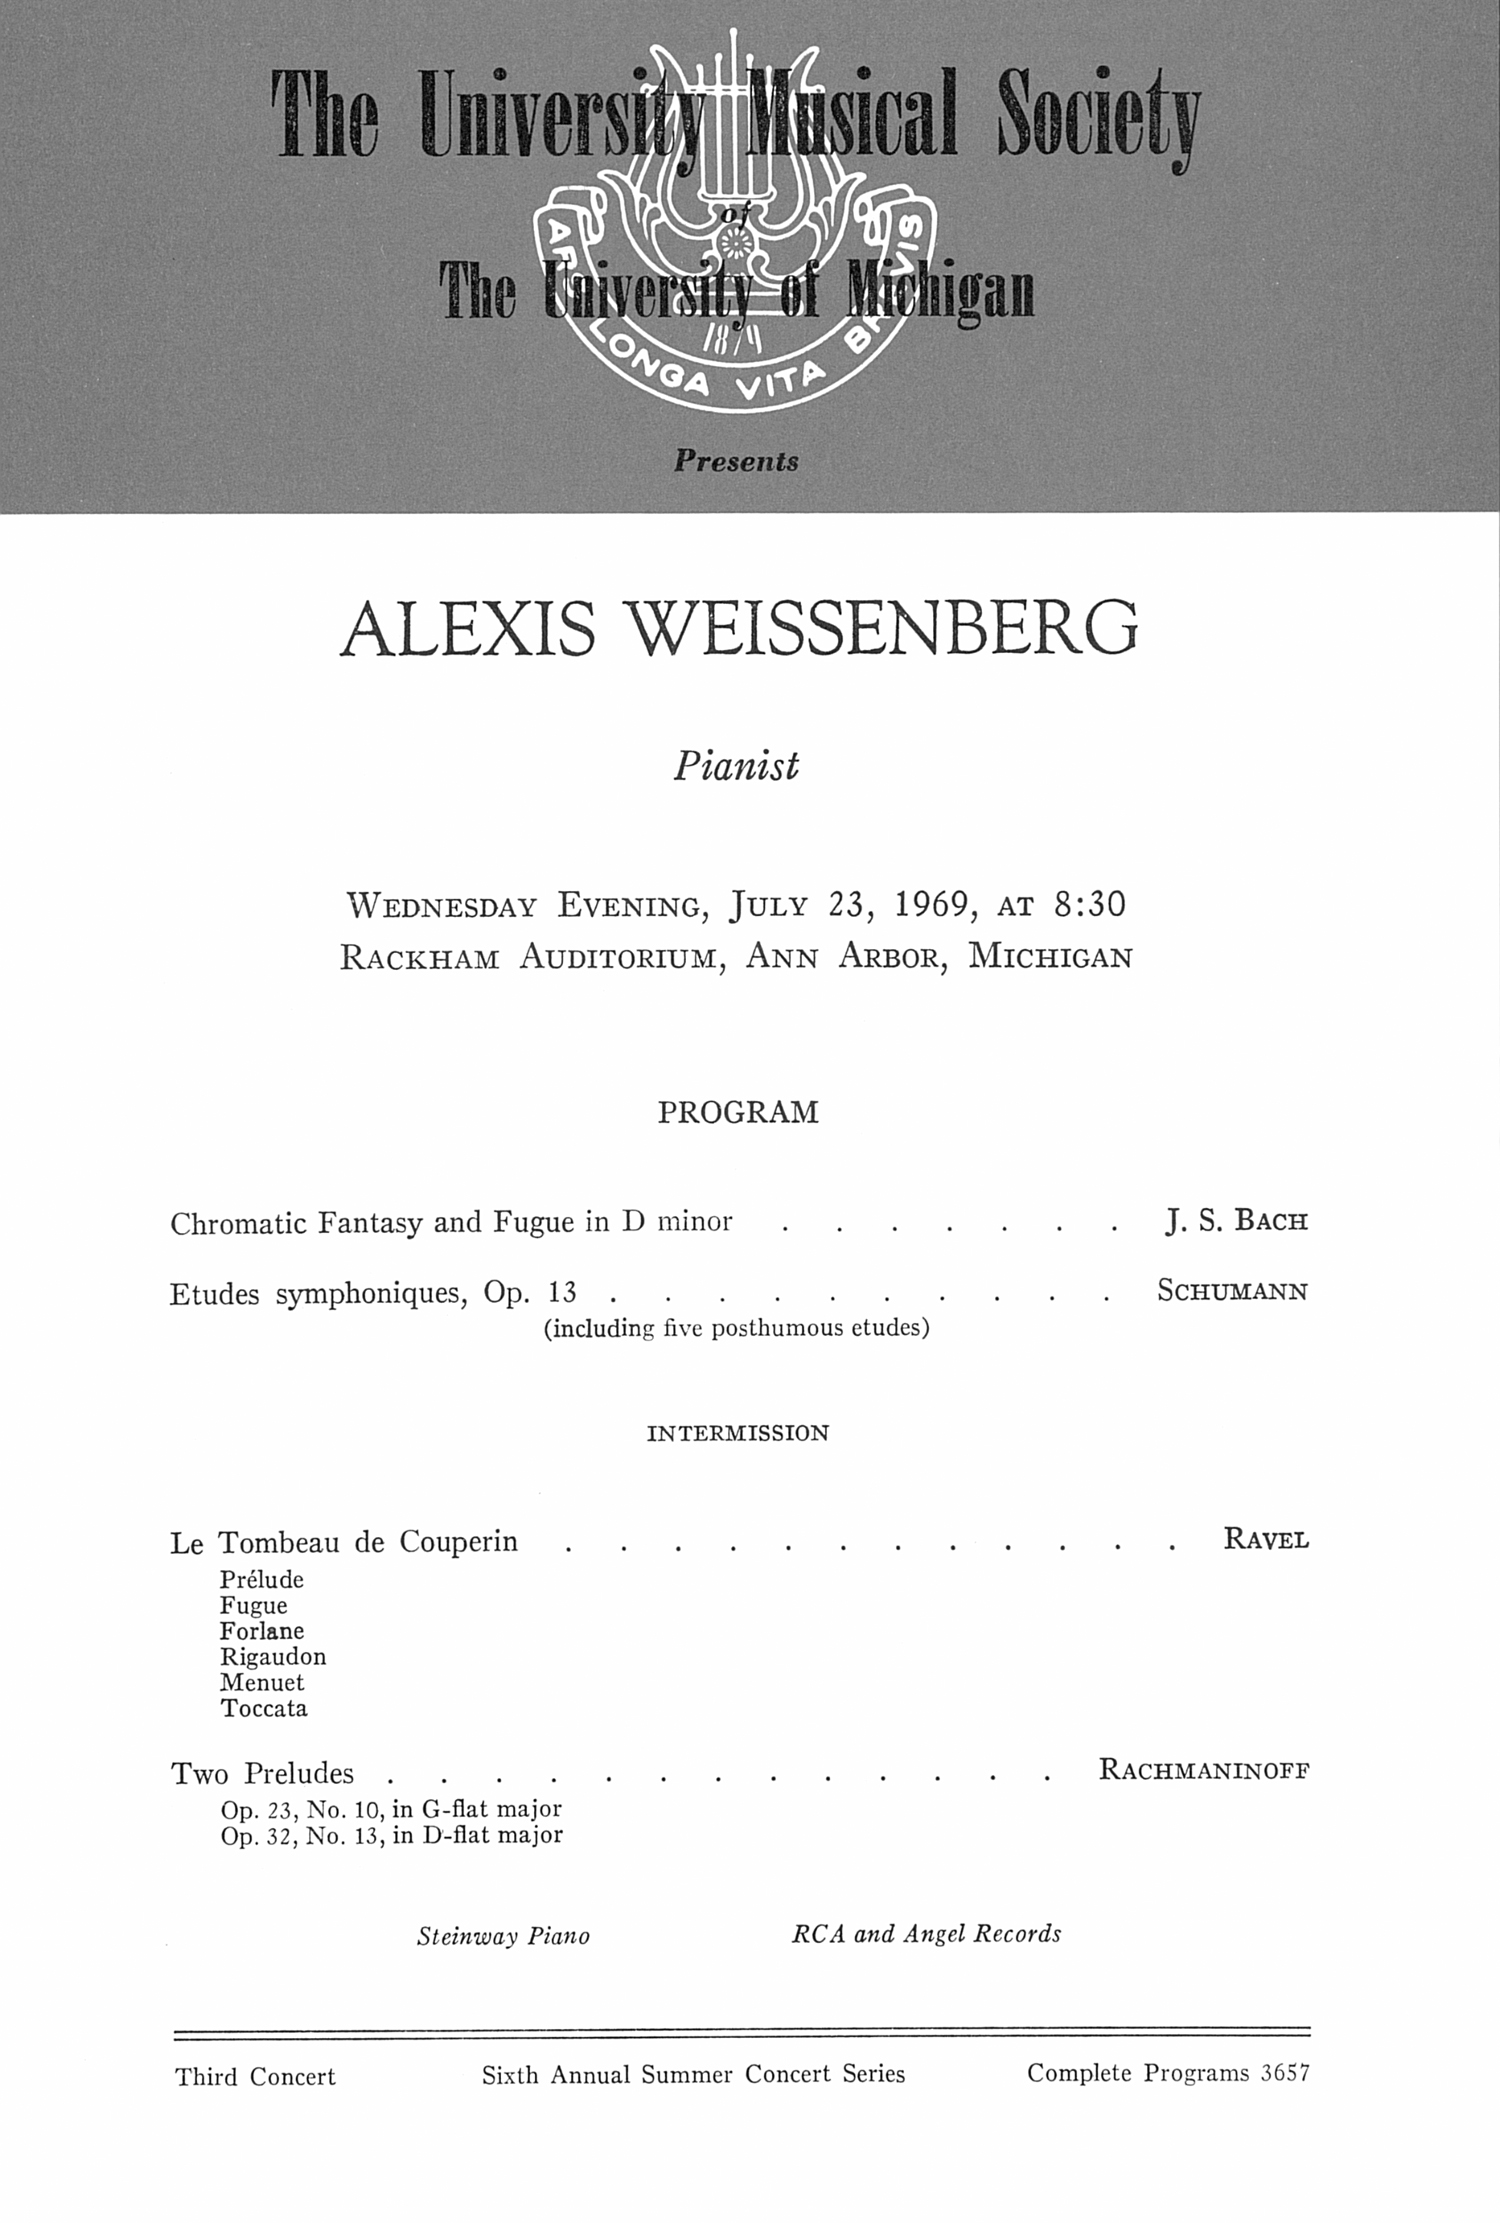 UMS Concert Program, July 23, 1969: Alexis Weissenberg --  image